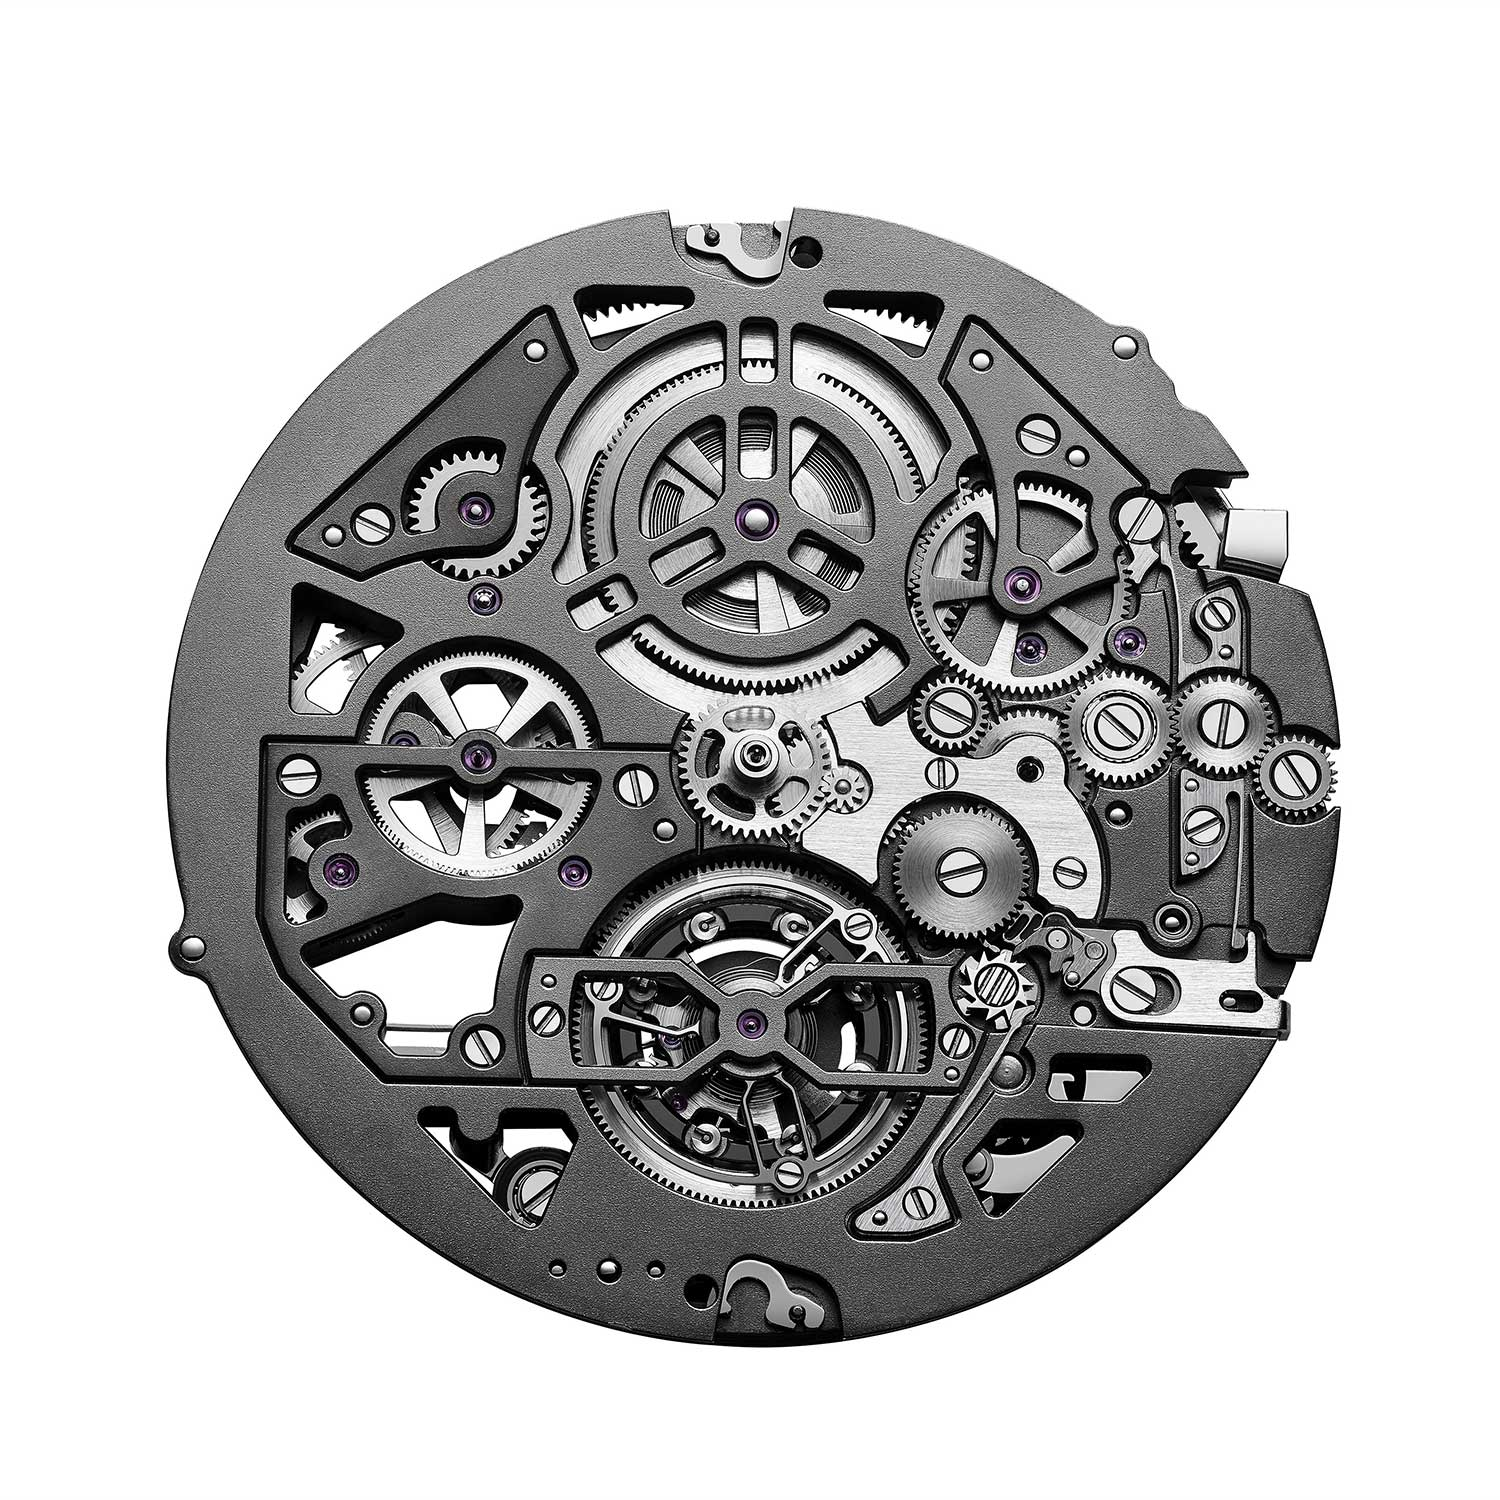 The dial side view of the 3.5mm BVL388 calibre